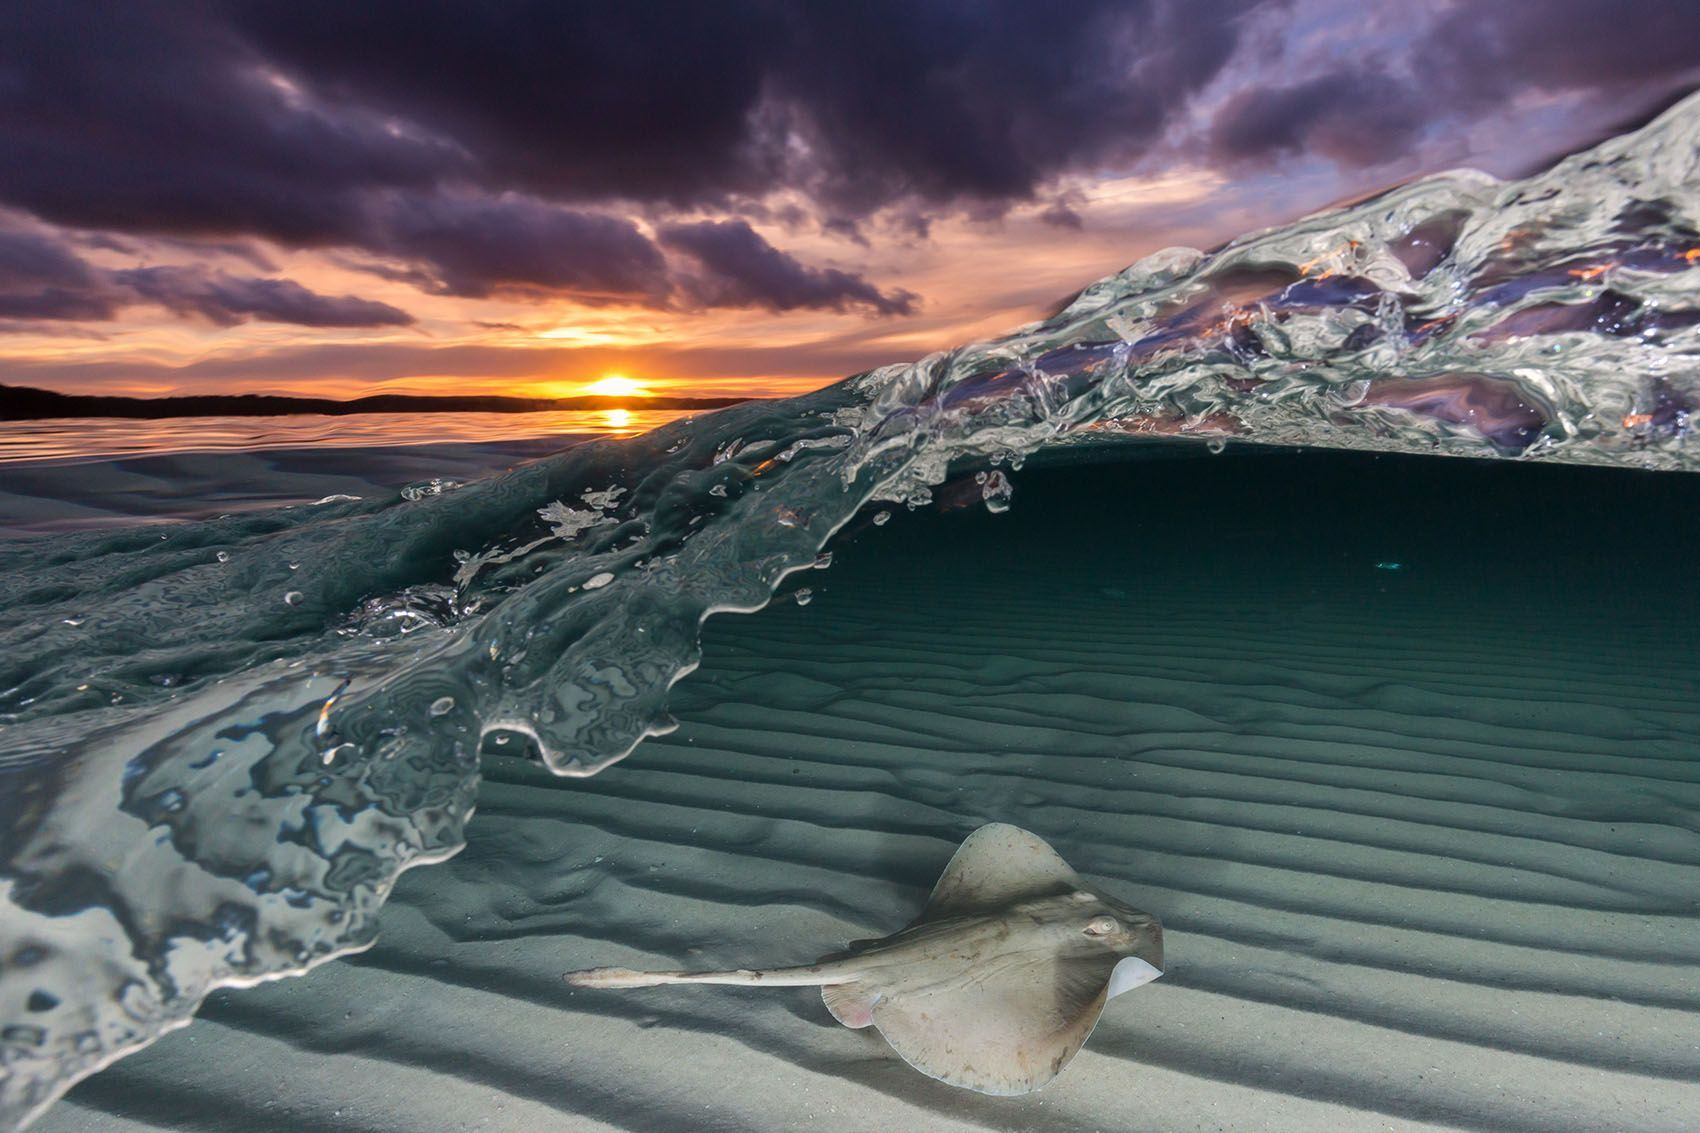 """""""Whilst out snorkelling late one afternoon on Jervis Bay [in Australia], I stumbled across this Common Stingaree gracefully gliding over the shallow sand flats,"""" says Your Shot photographer Jordan Robins. """"As the sun was setting, I managed to captured this over-under image where you can see above and below the water captured in a single exposure."""""""